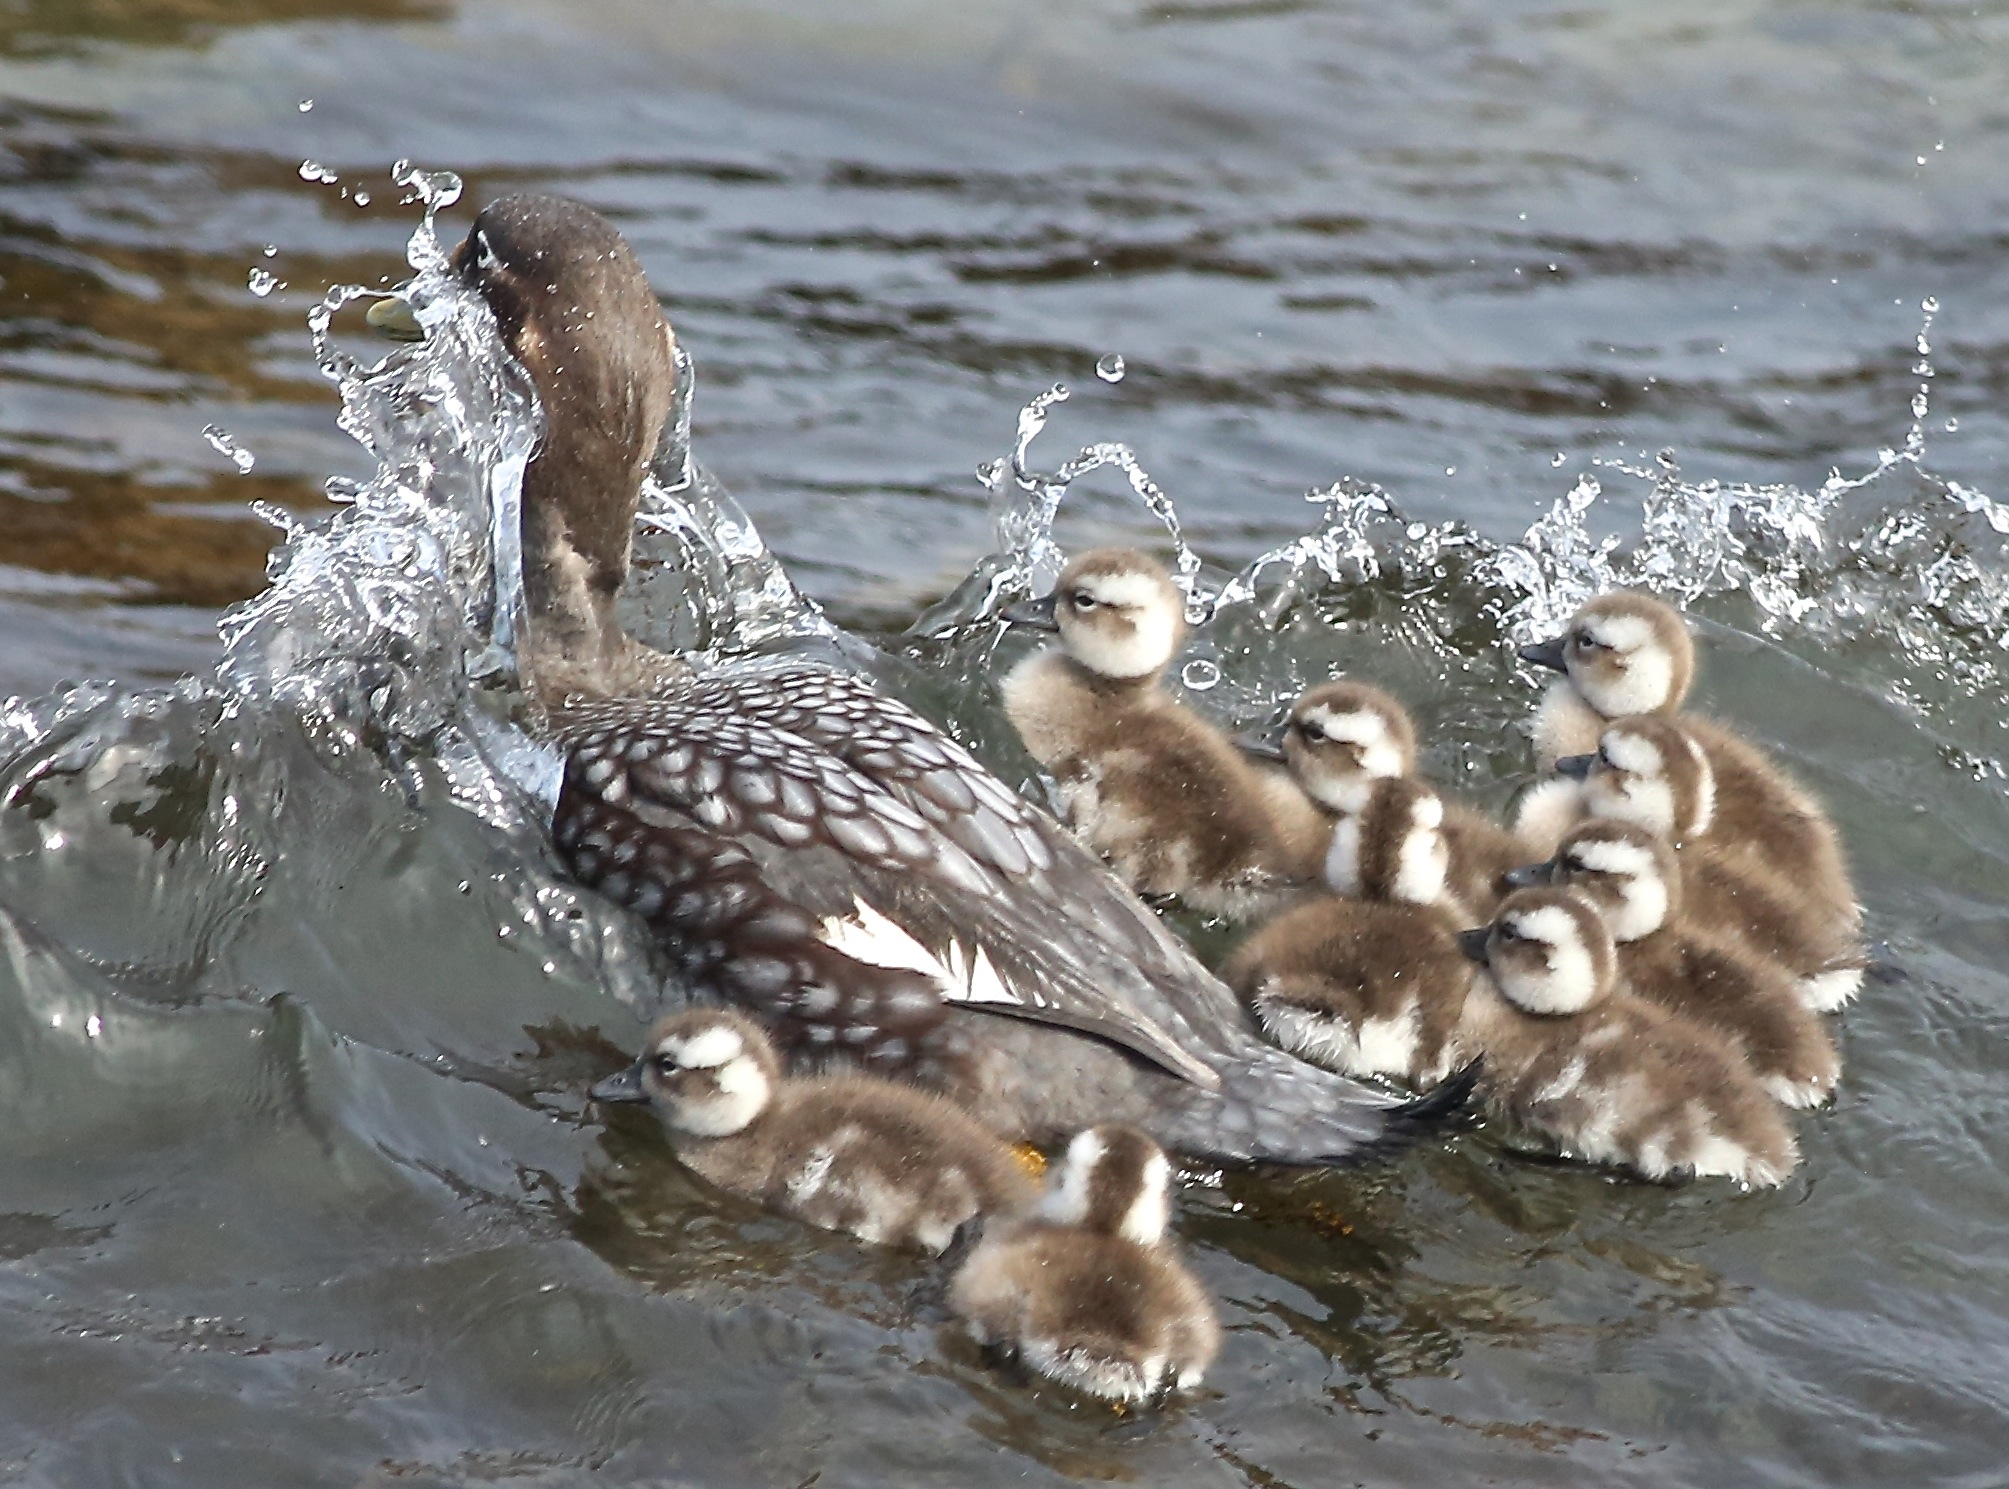 A Falkland flightless steamer duck took her chicks out for a swim in waves that knocked them about but didn't stop them from huddling near her.